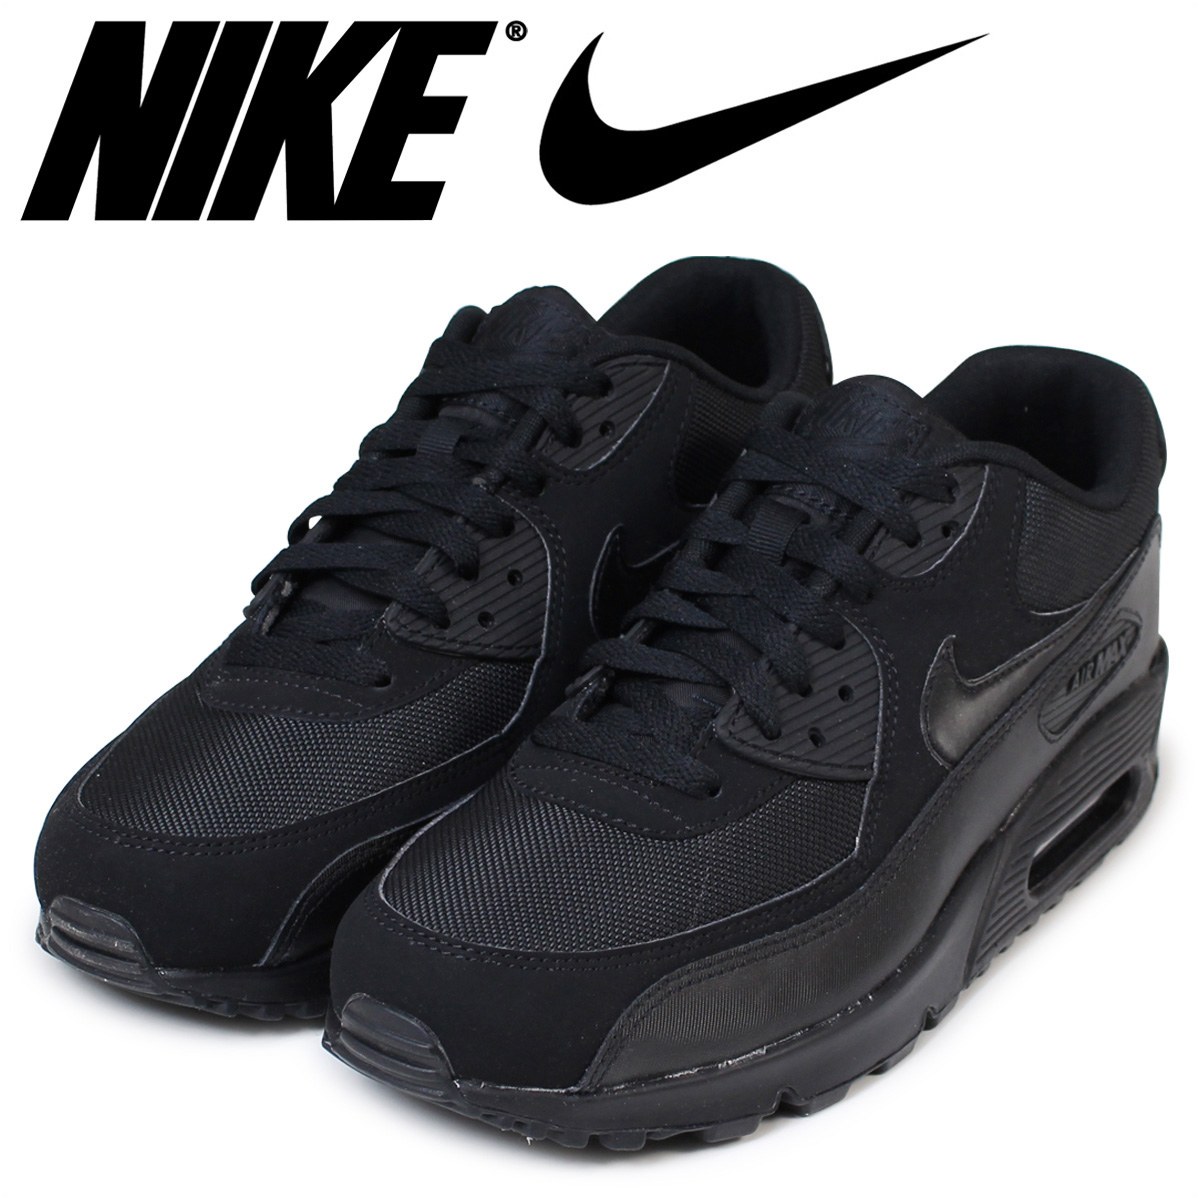 huge discount c5a07 69cf8 NIKE Kie Ney AMAX 90 essential sneakers men AIR MAX 90 ESSENTIAL  537,384-090 black black